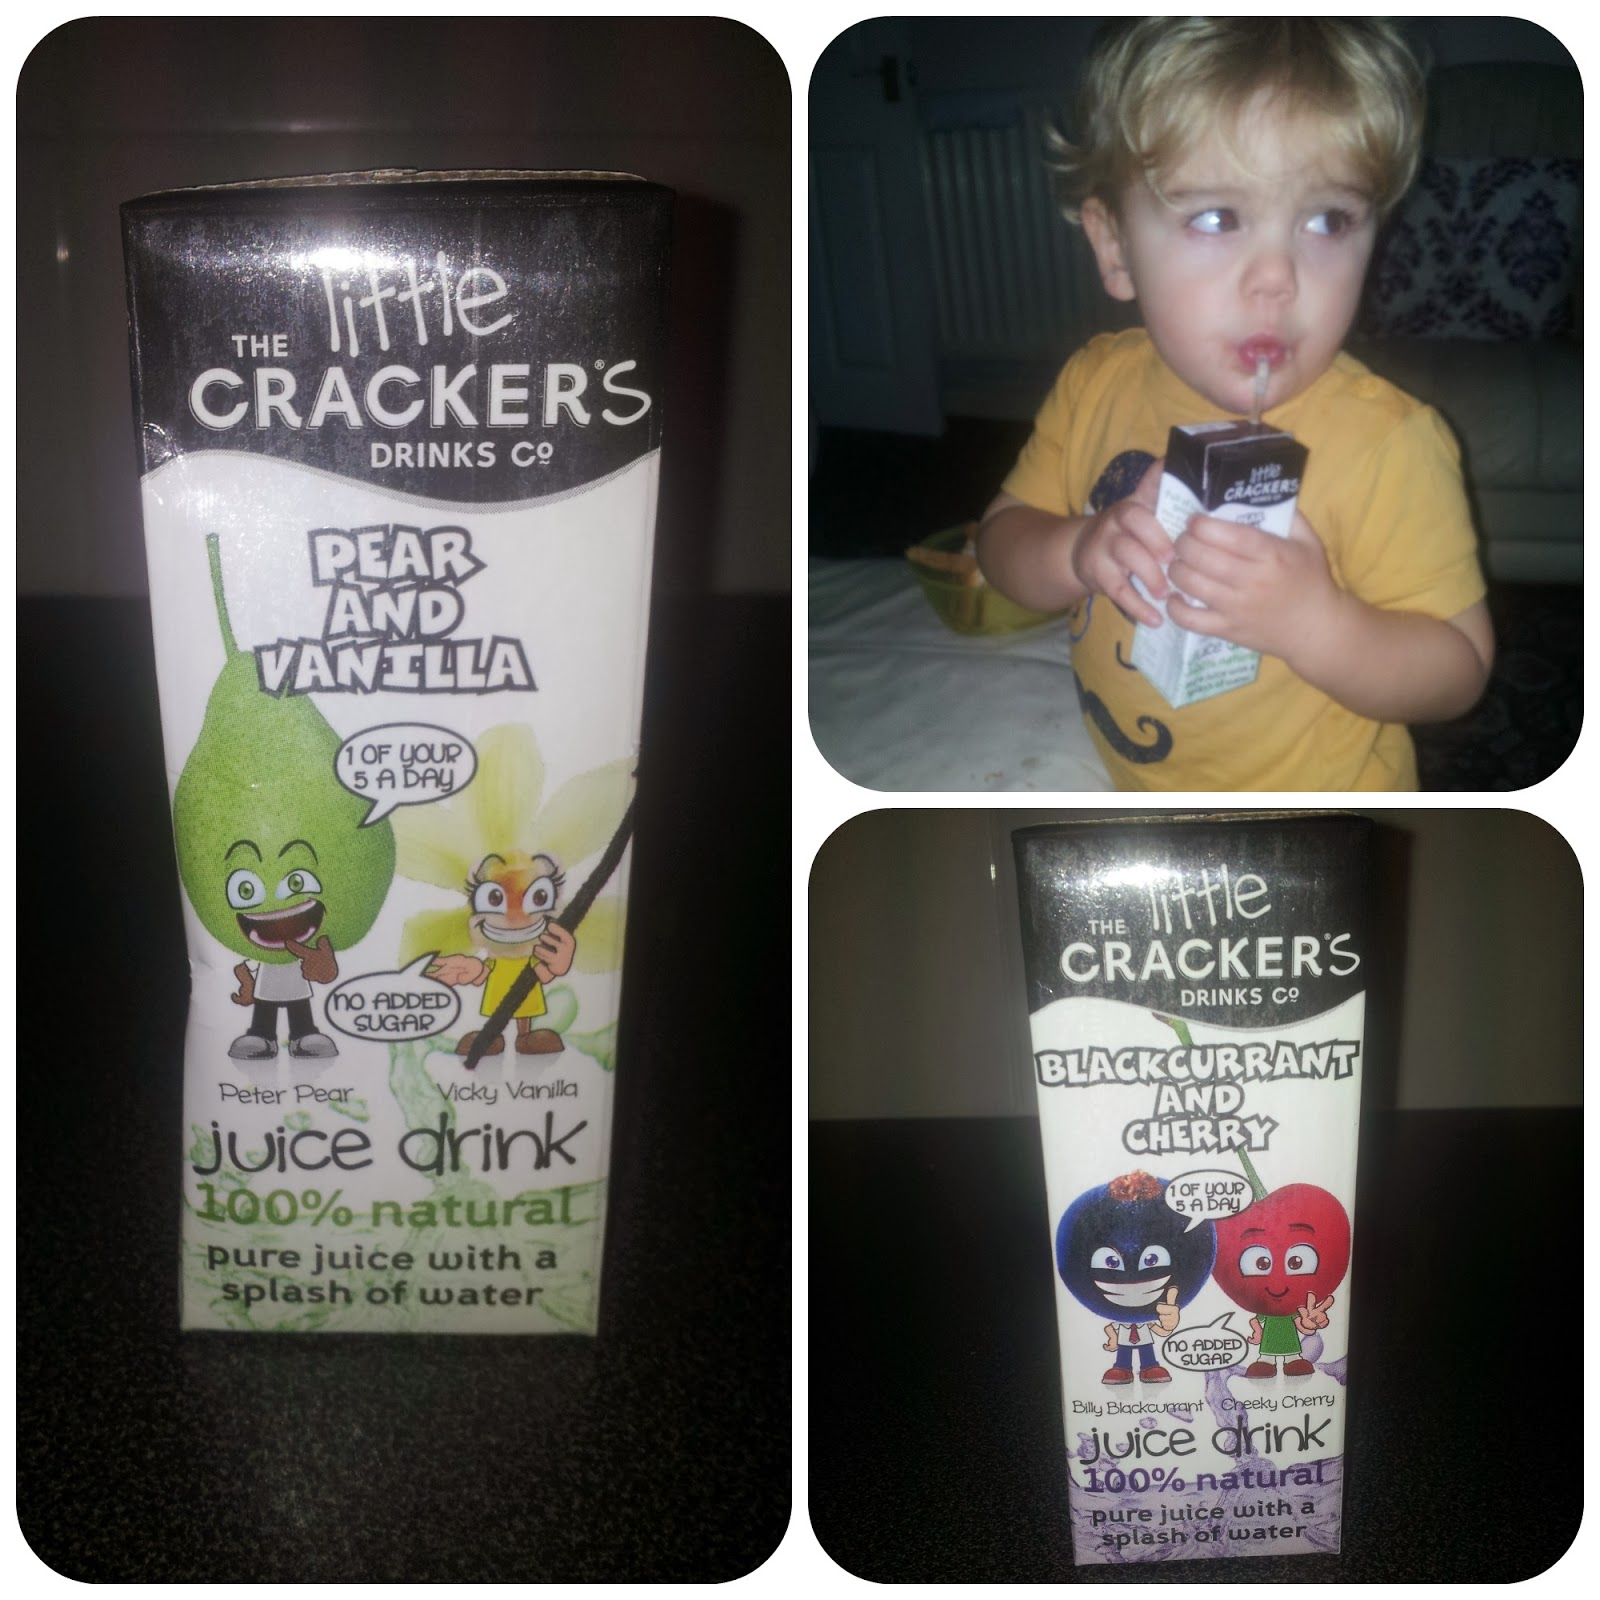 Little Crackers Drinks Co. My Mummys World